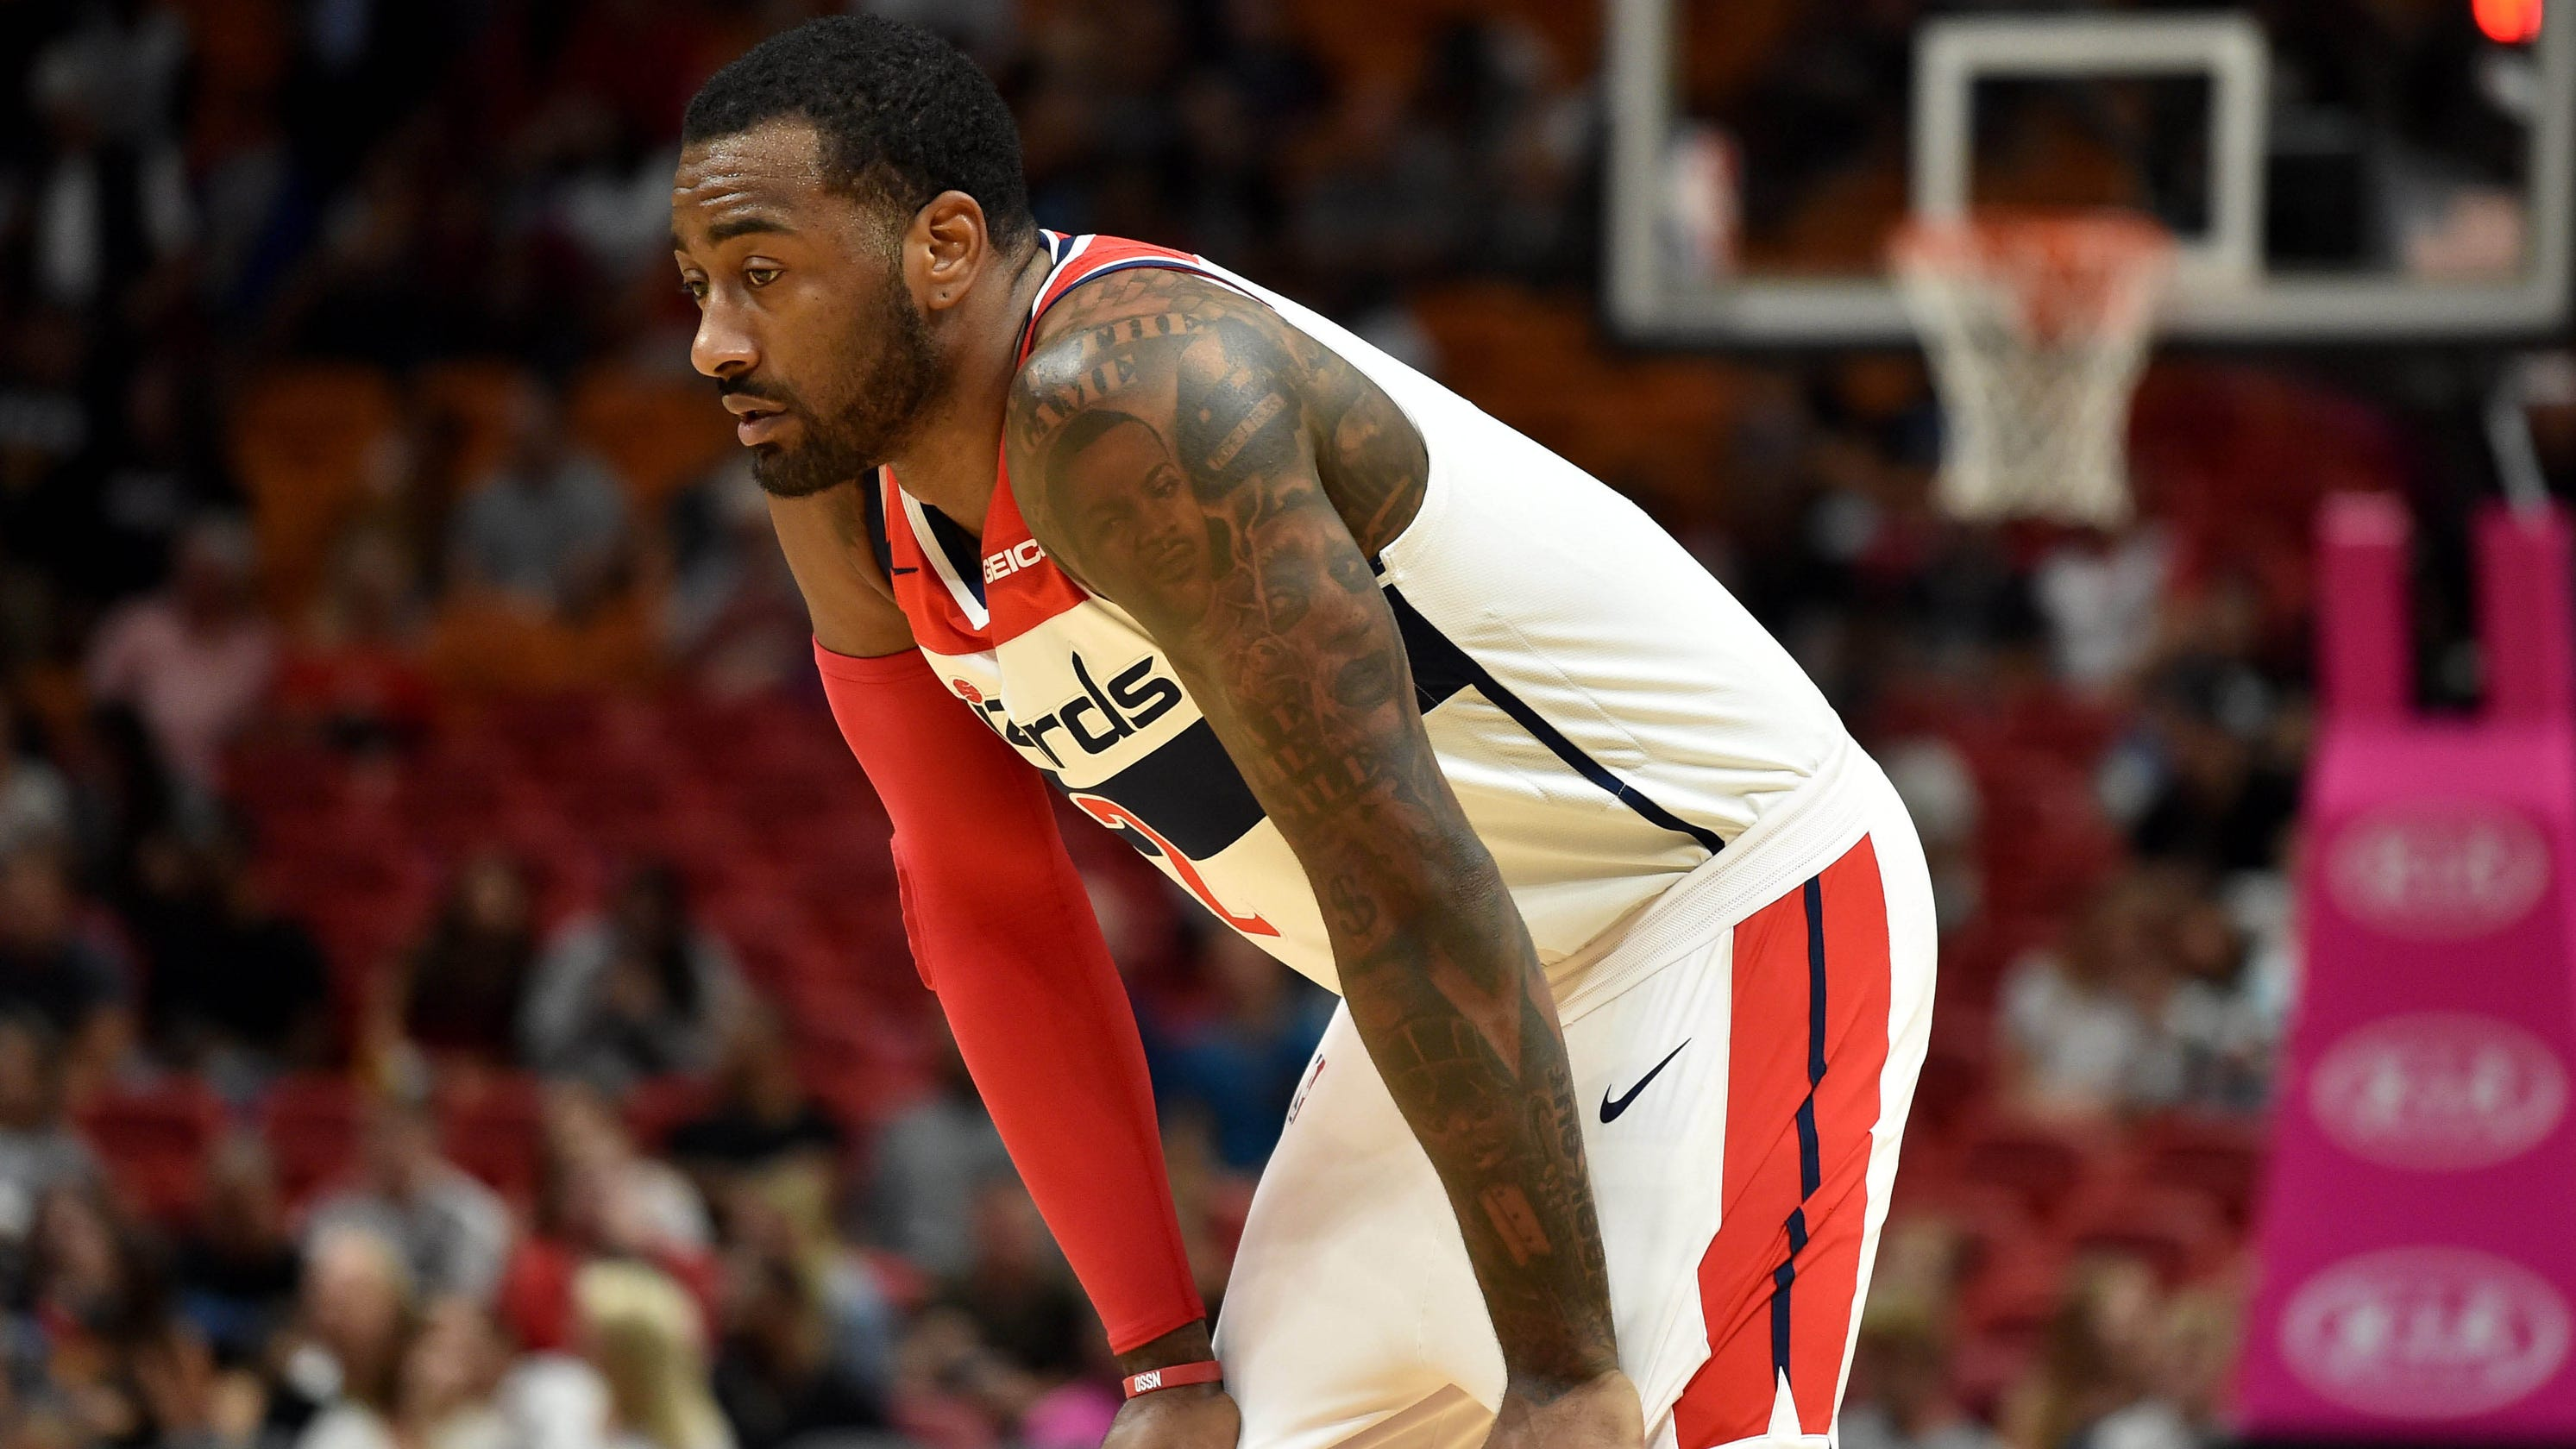 John Wall Wizards fine All-Star guard for cursing at coach